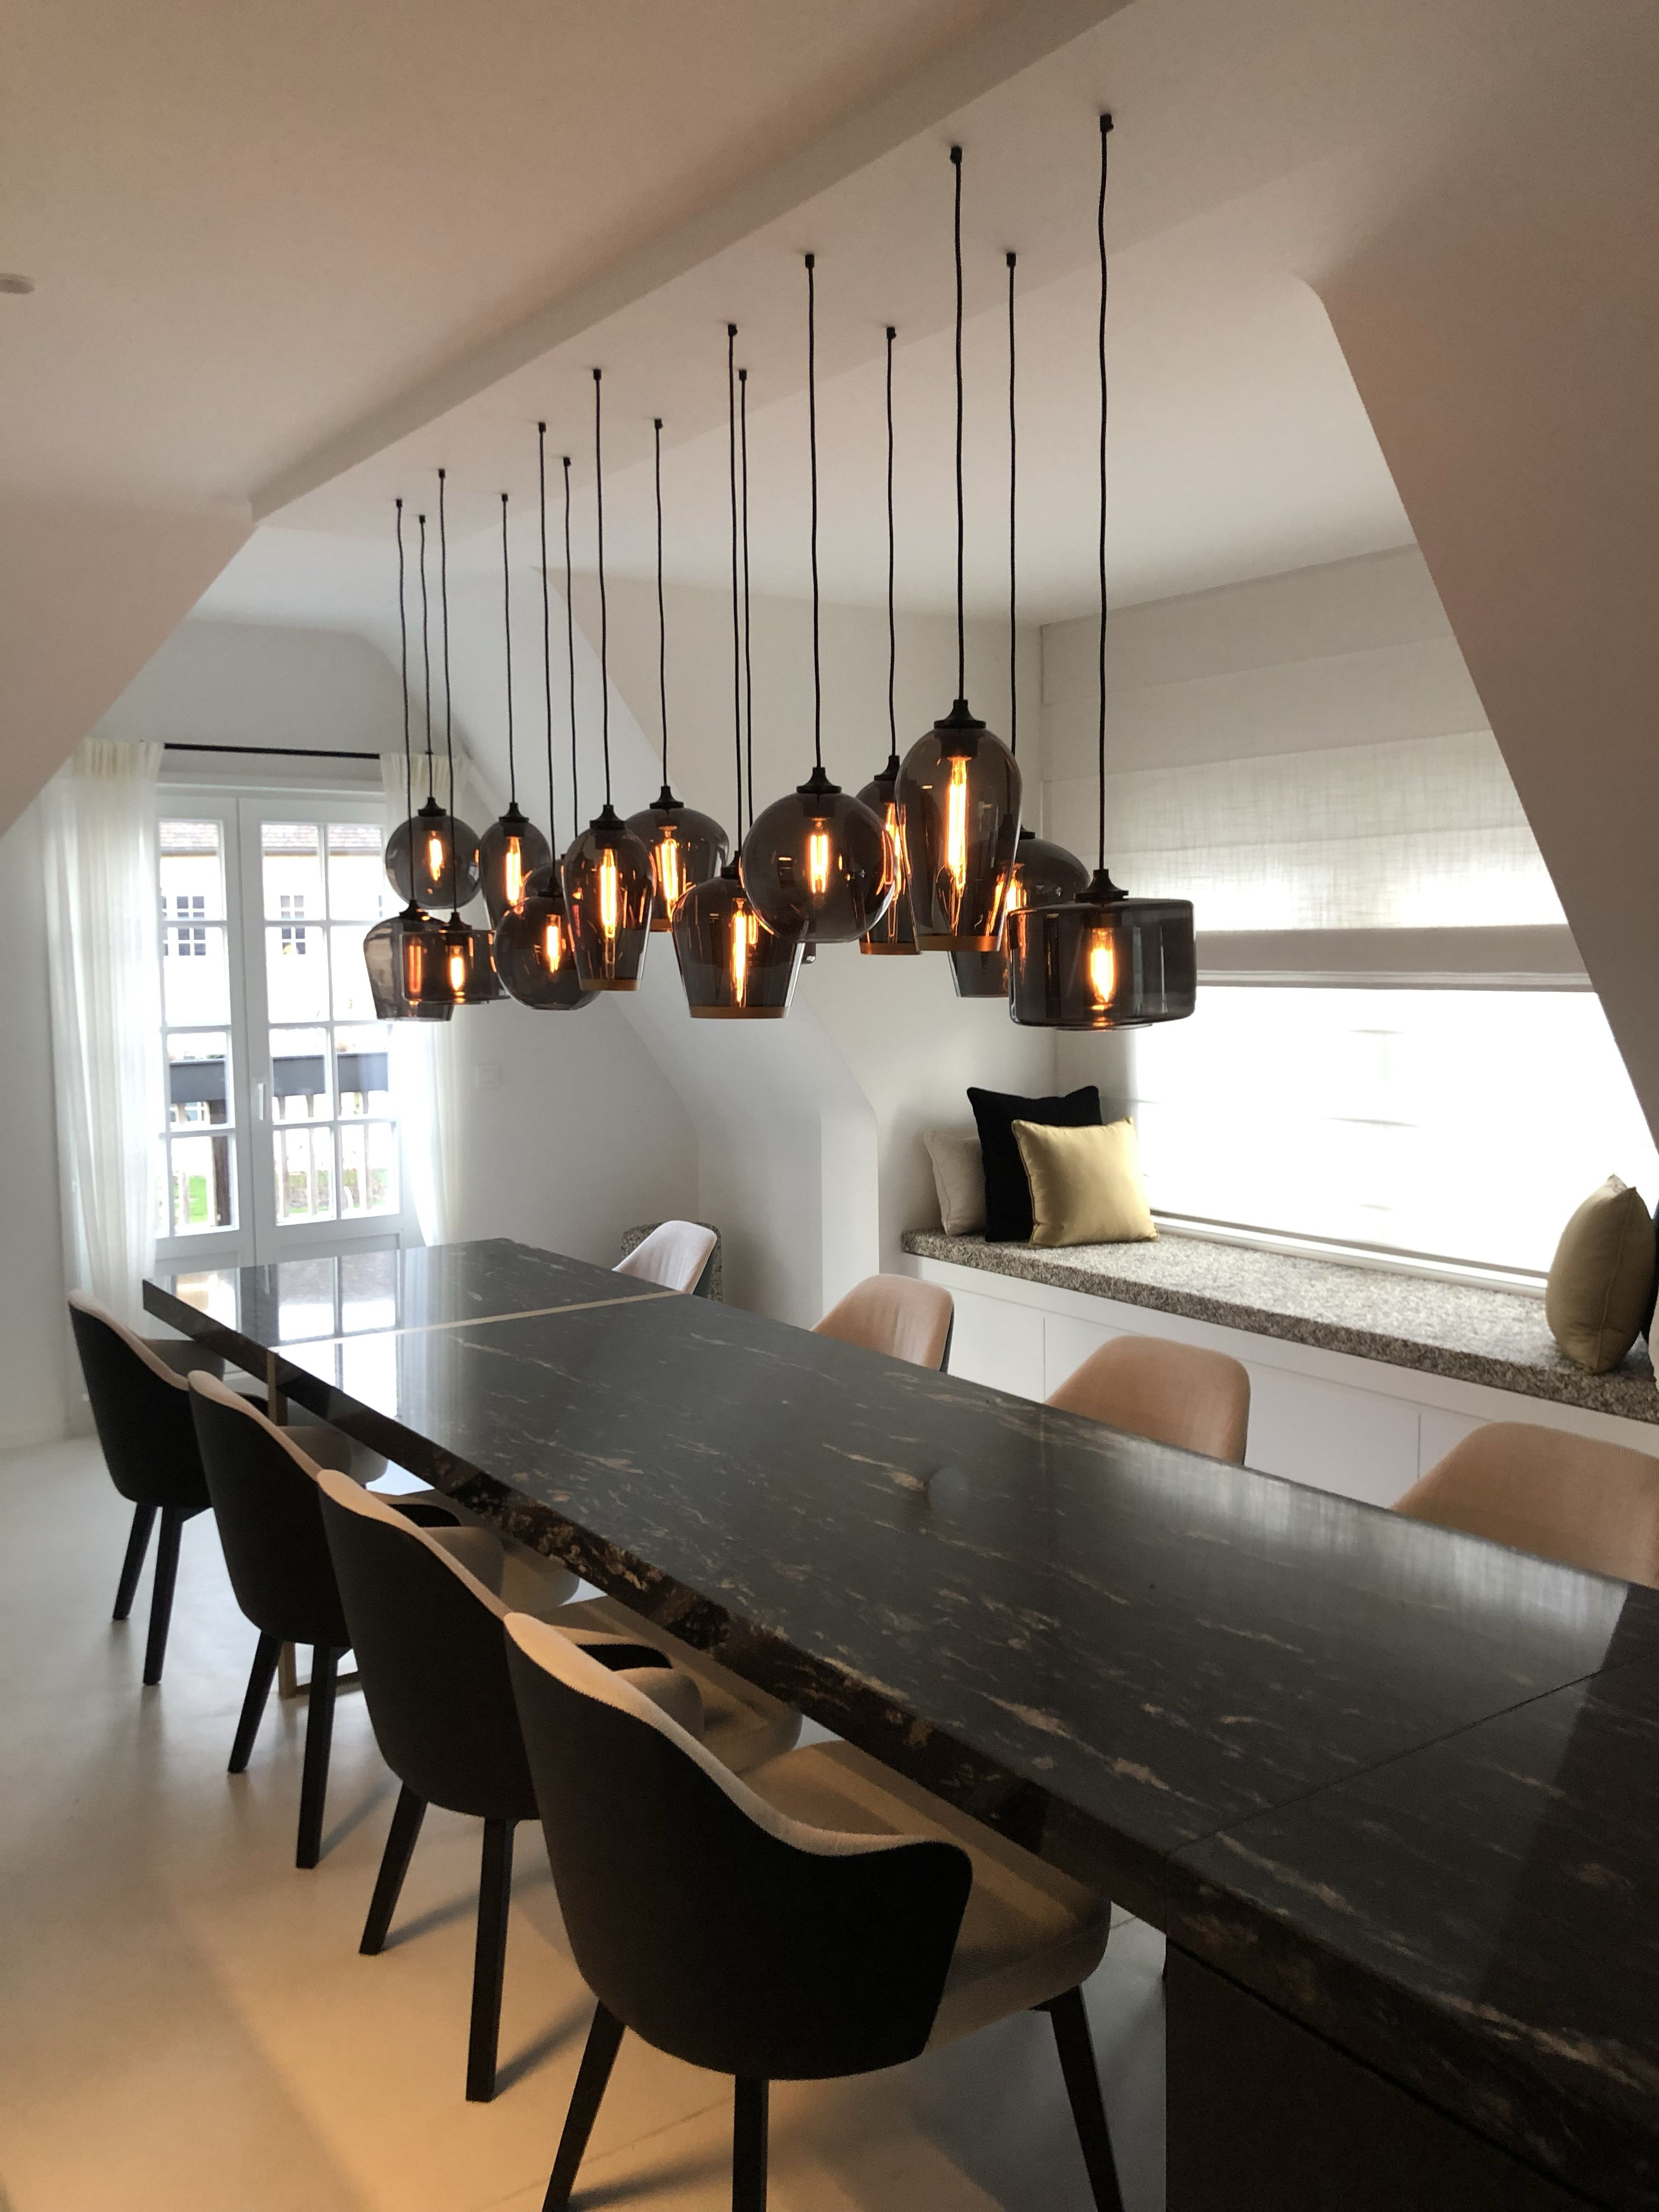 The Eve Icons In Black Huis Interieur Kantoorinterieur Interieur